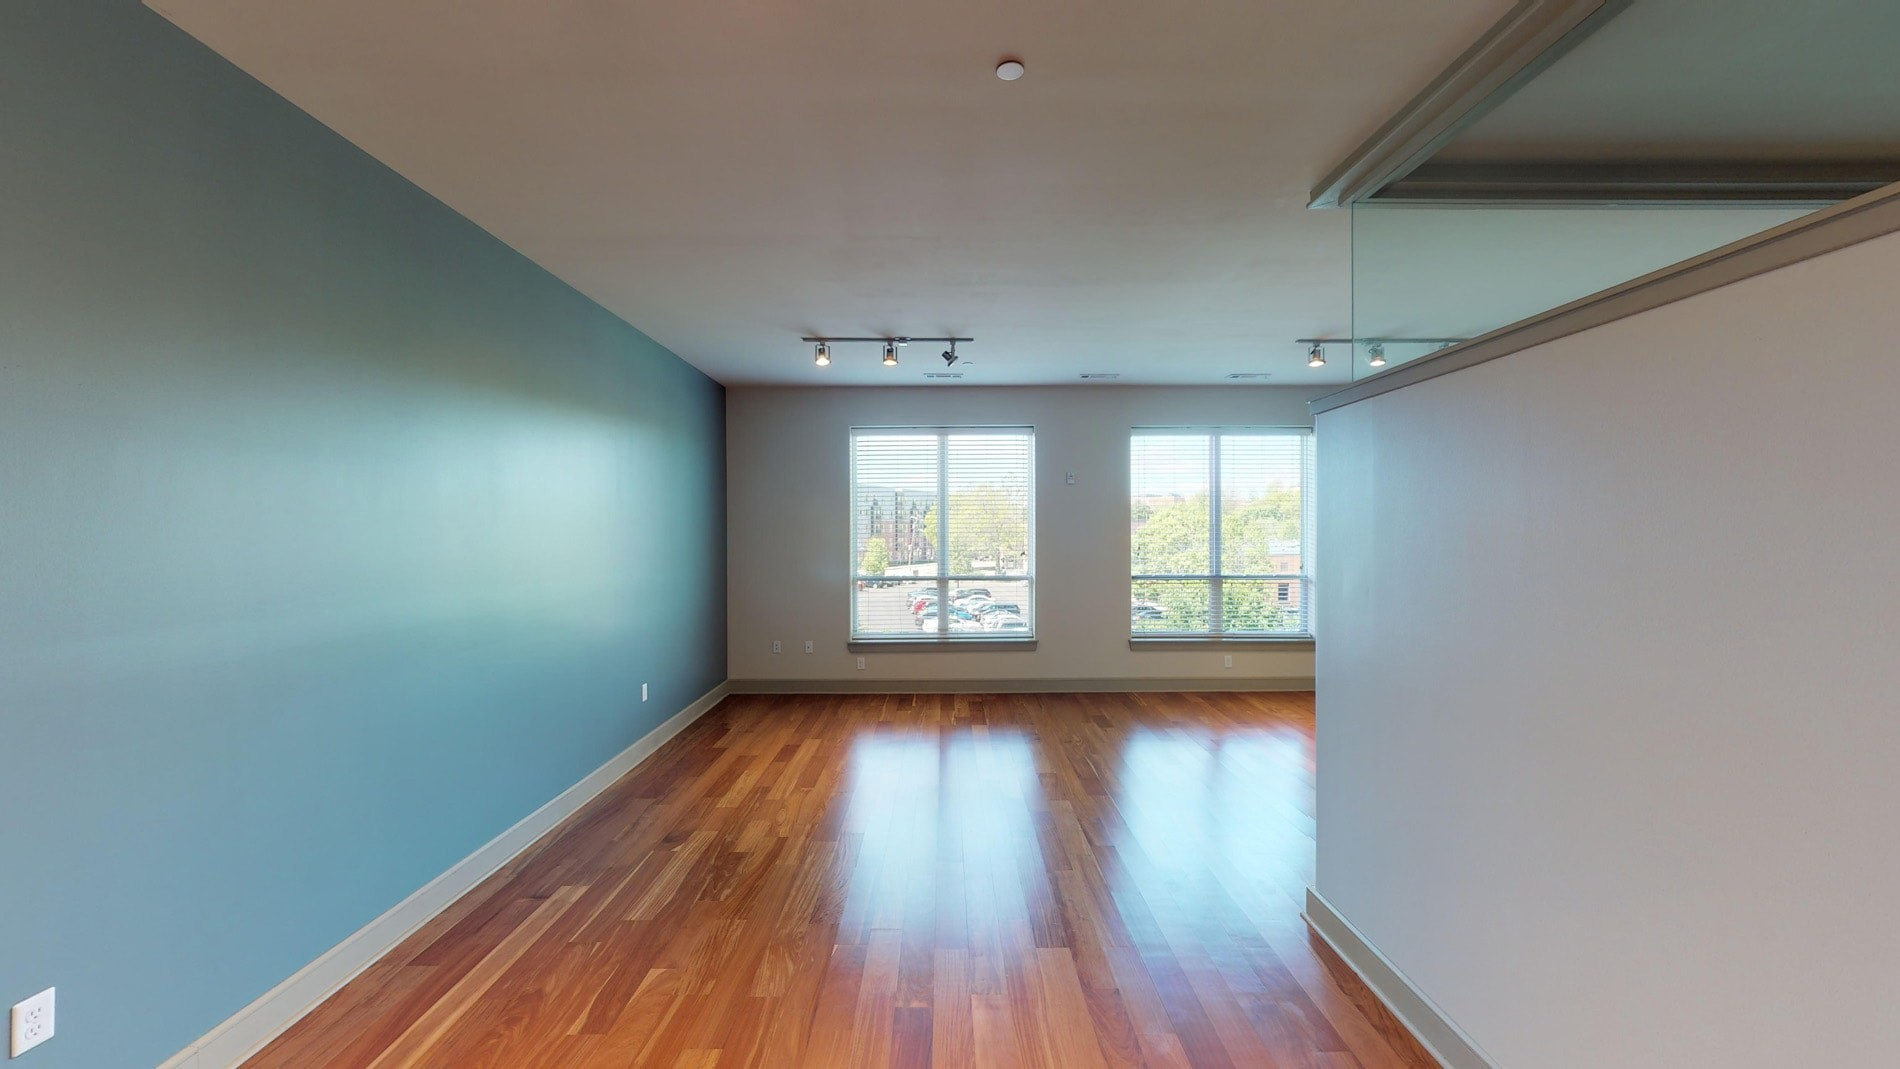 1 Bed, 1 Bath apartment in Needham for $2,819